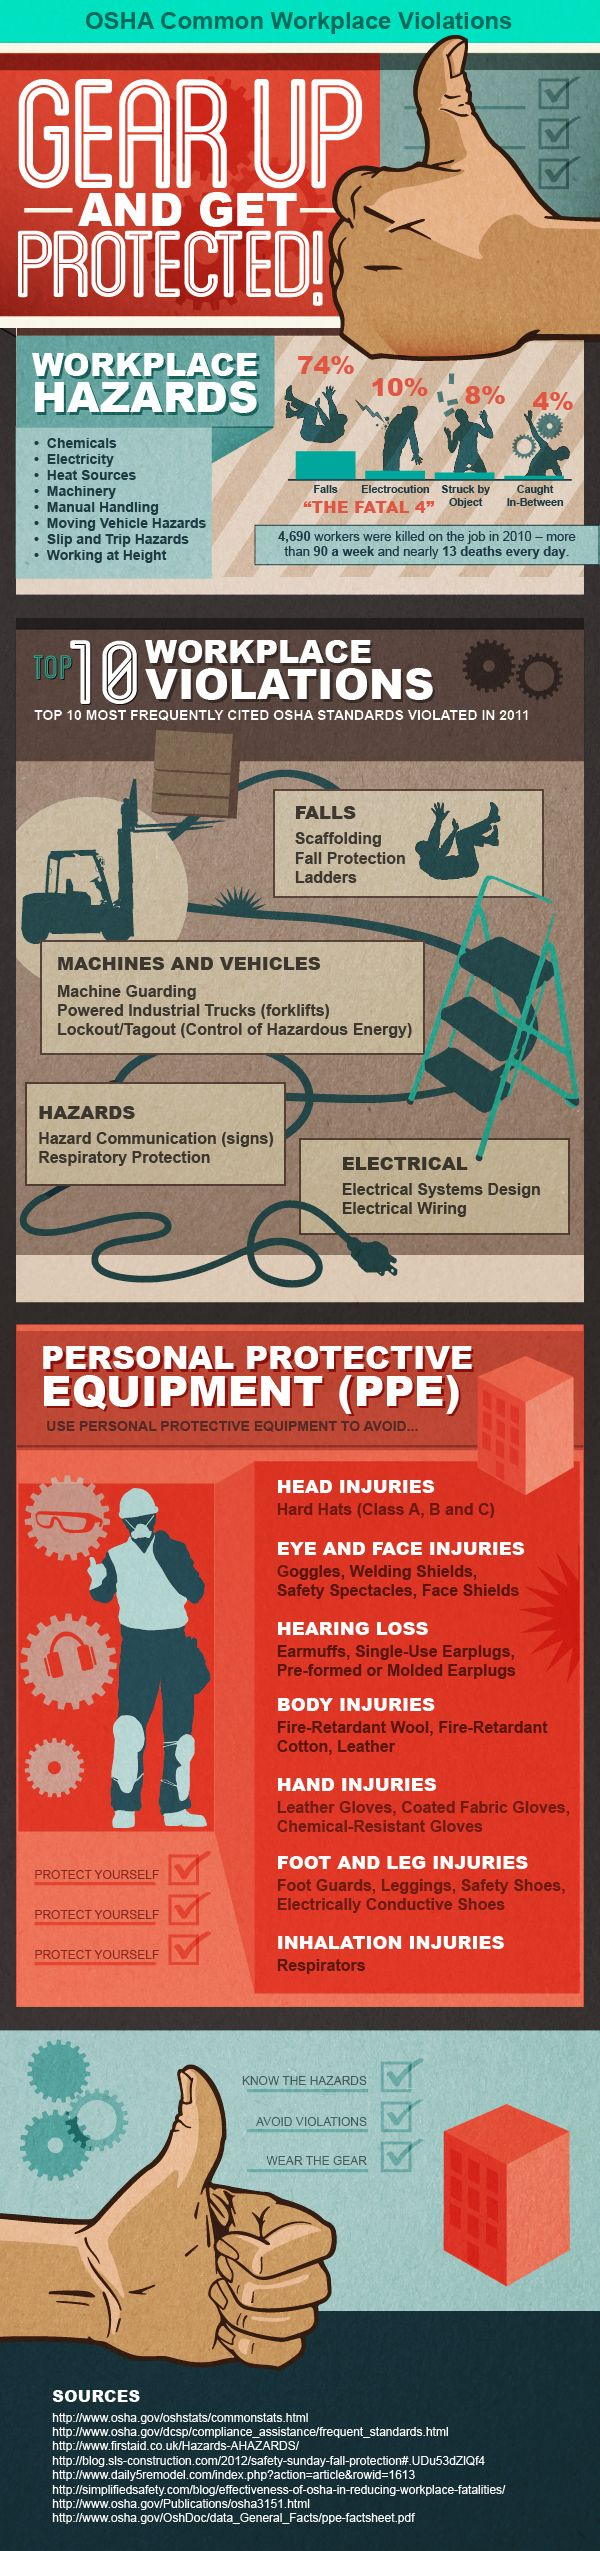 This infographic highlights common workplace hazards and violations and provides tips for safety on the job